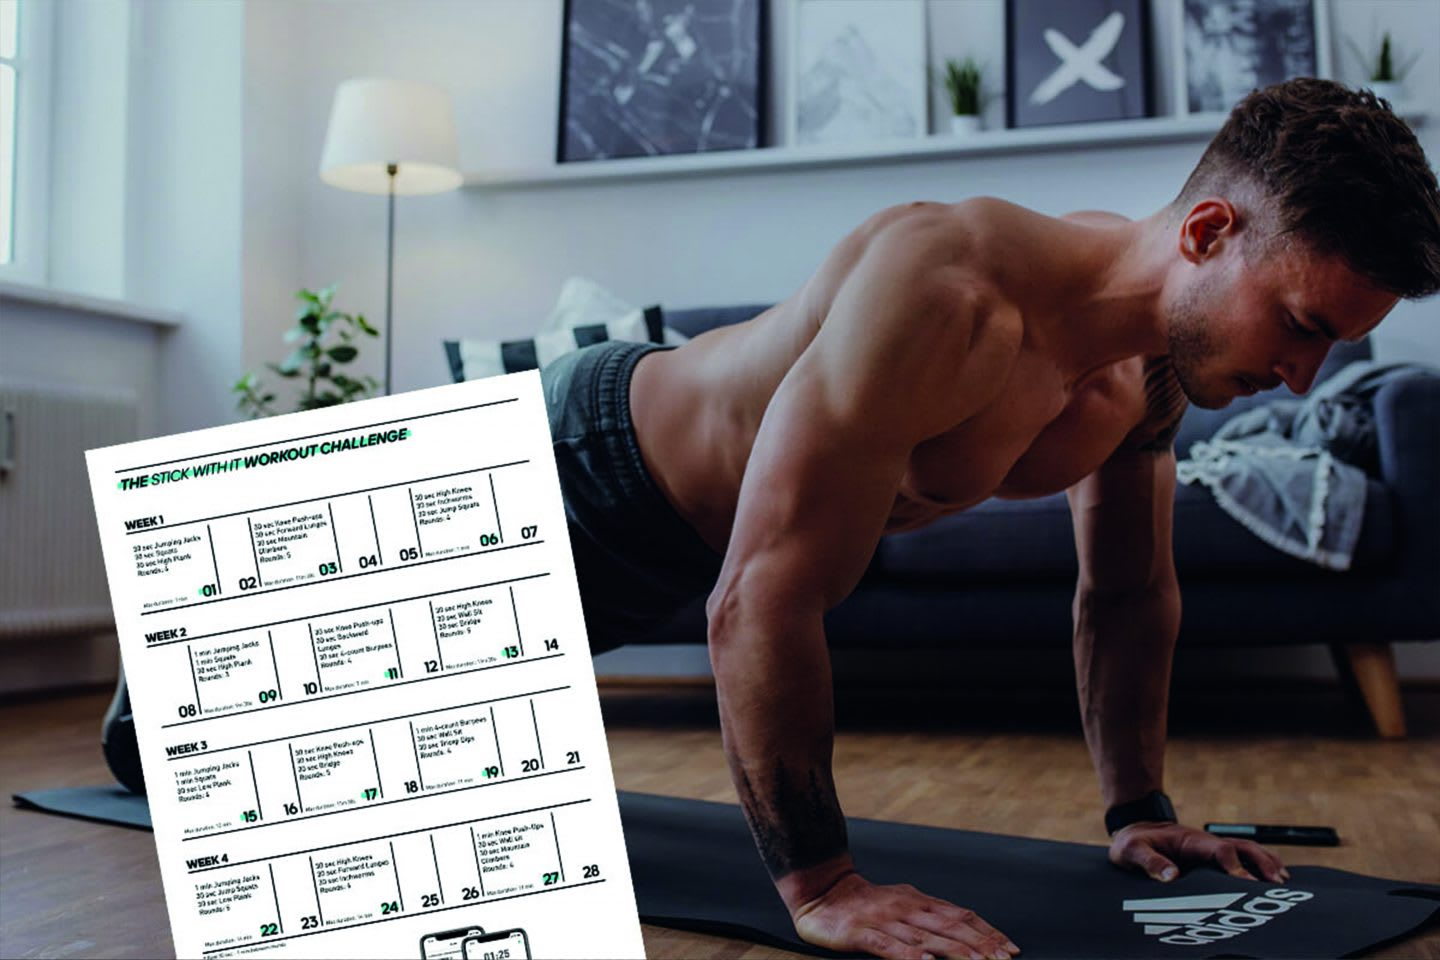 Man working out at home with sports plan, home office, workout, sports, exercise, challenge, GamePlan A